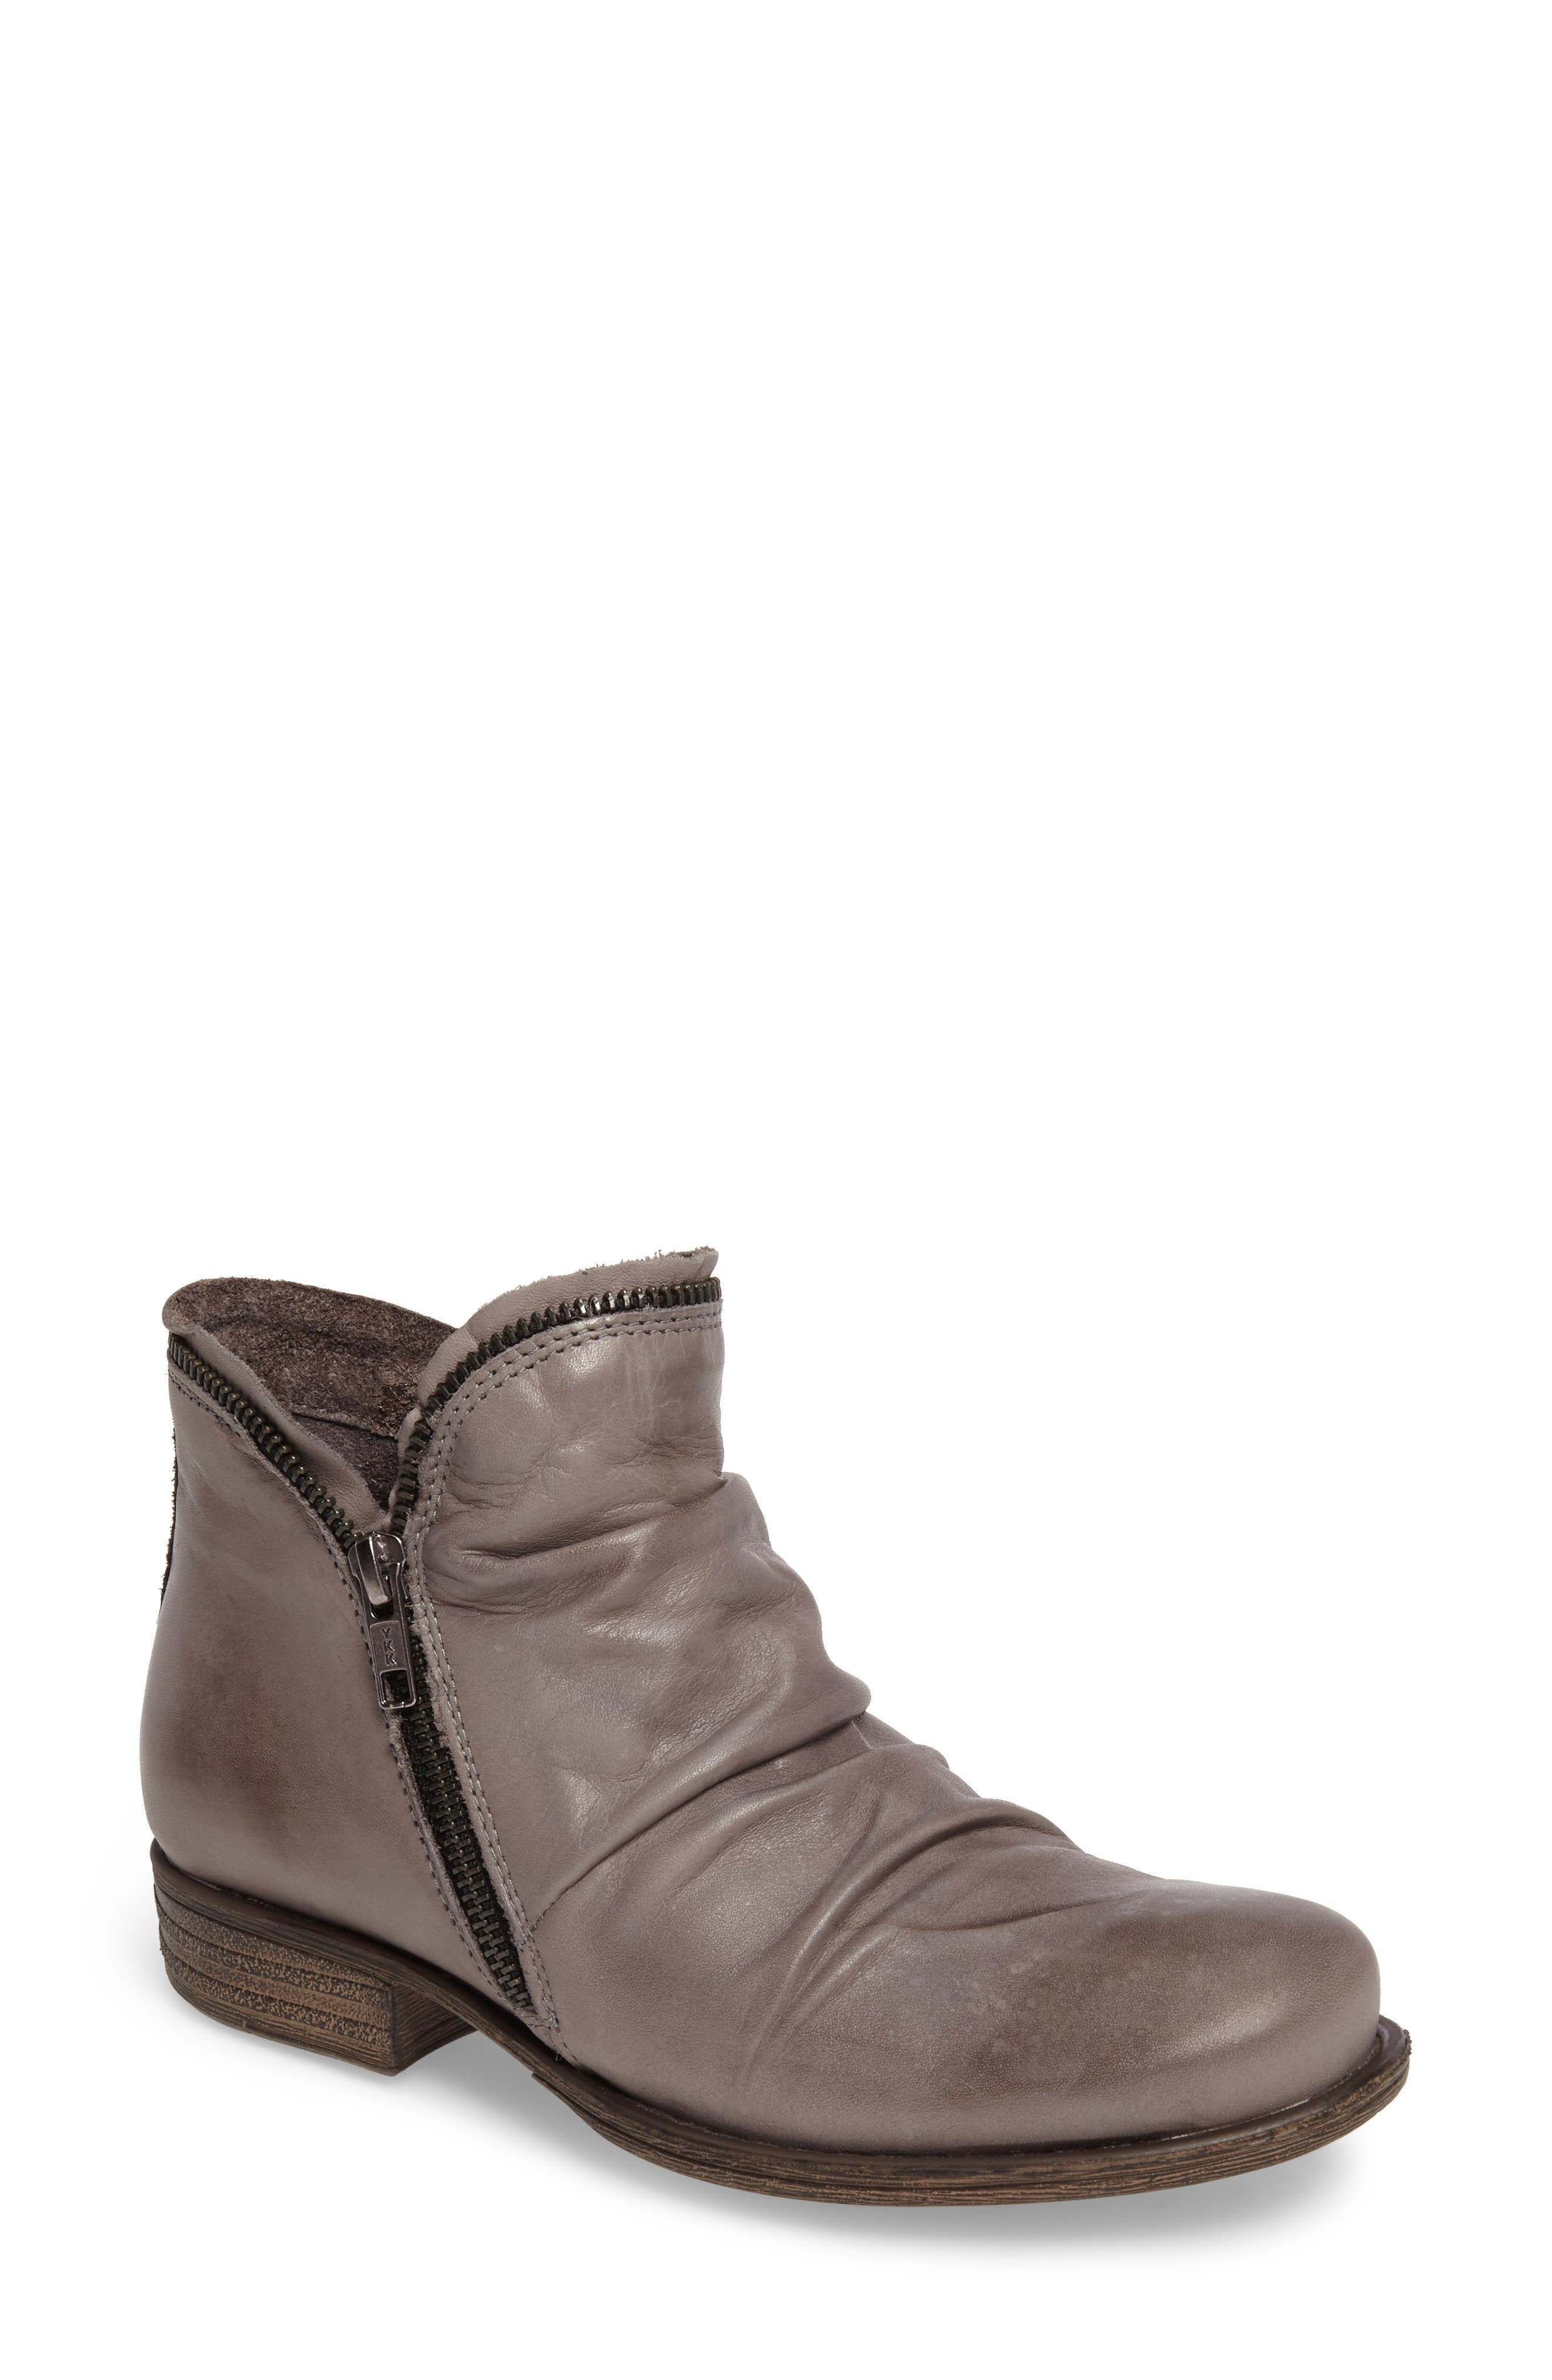 Miz Mooz 'Luna' Ankle Boot (Women)